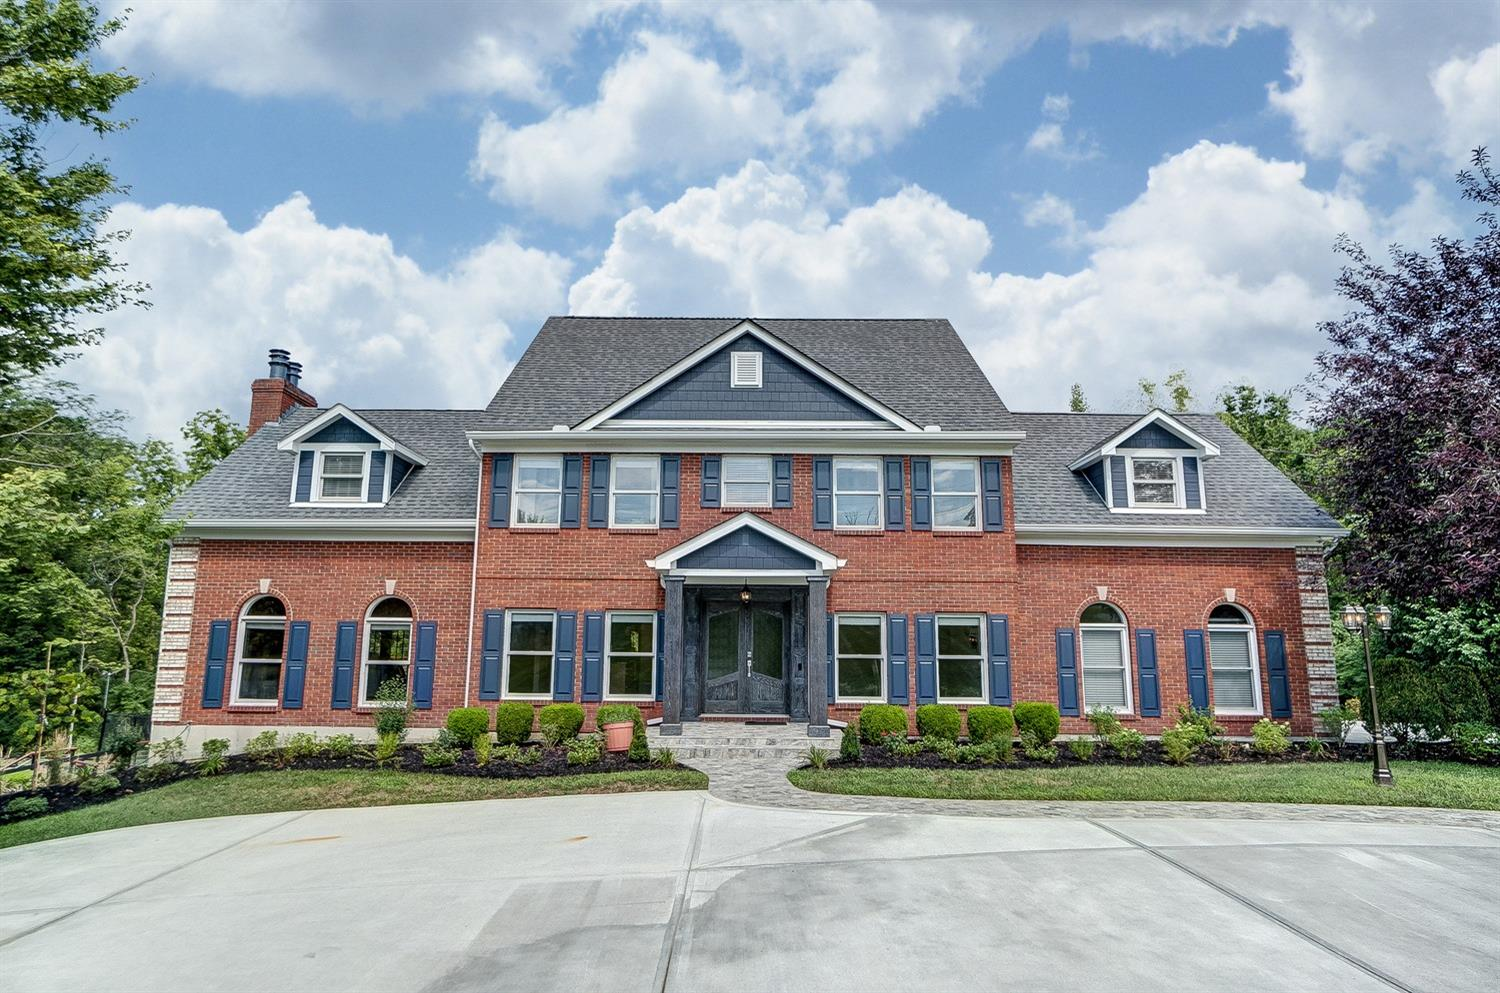 7607 Princeton Glendale Rd West Chester - West, OH